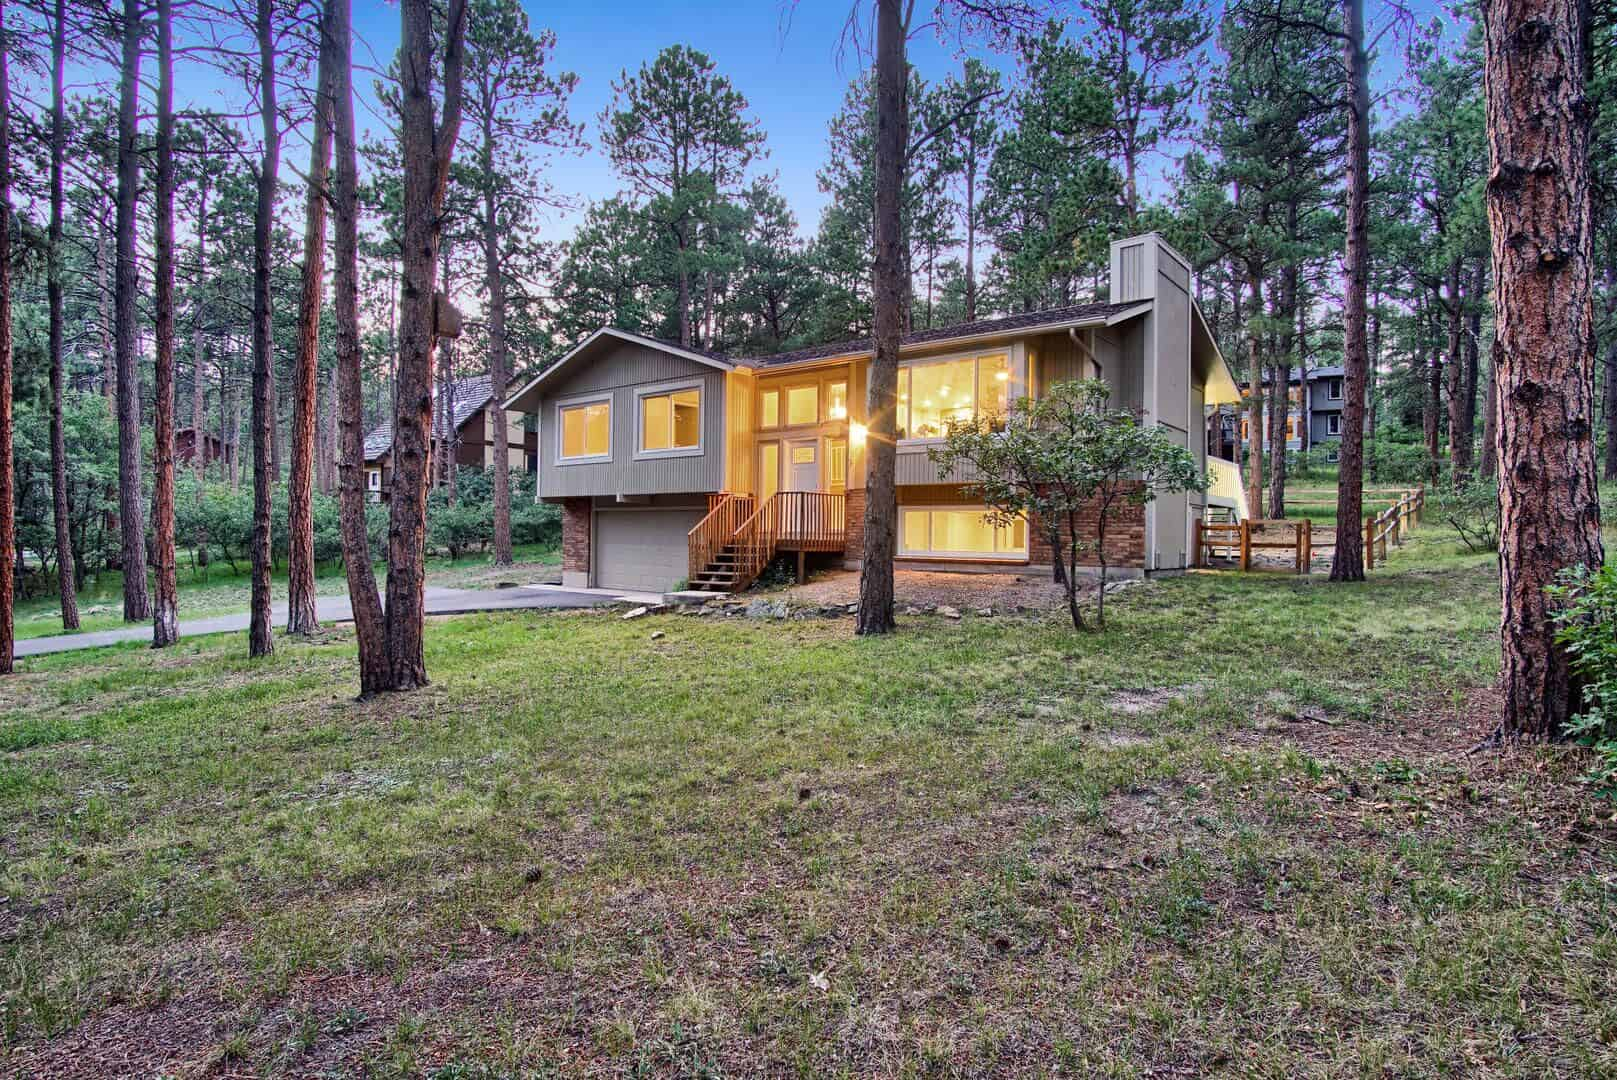 Modern Remodel on 0.71 Acre Lot